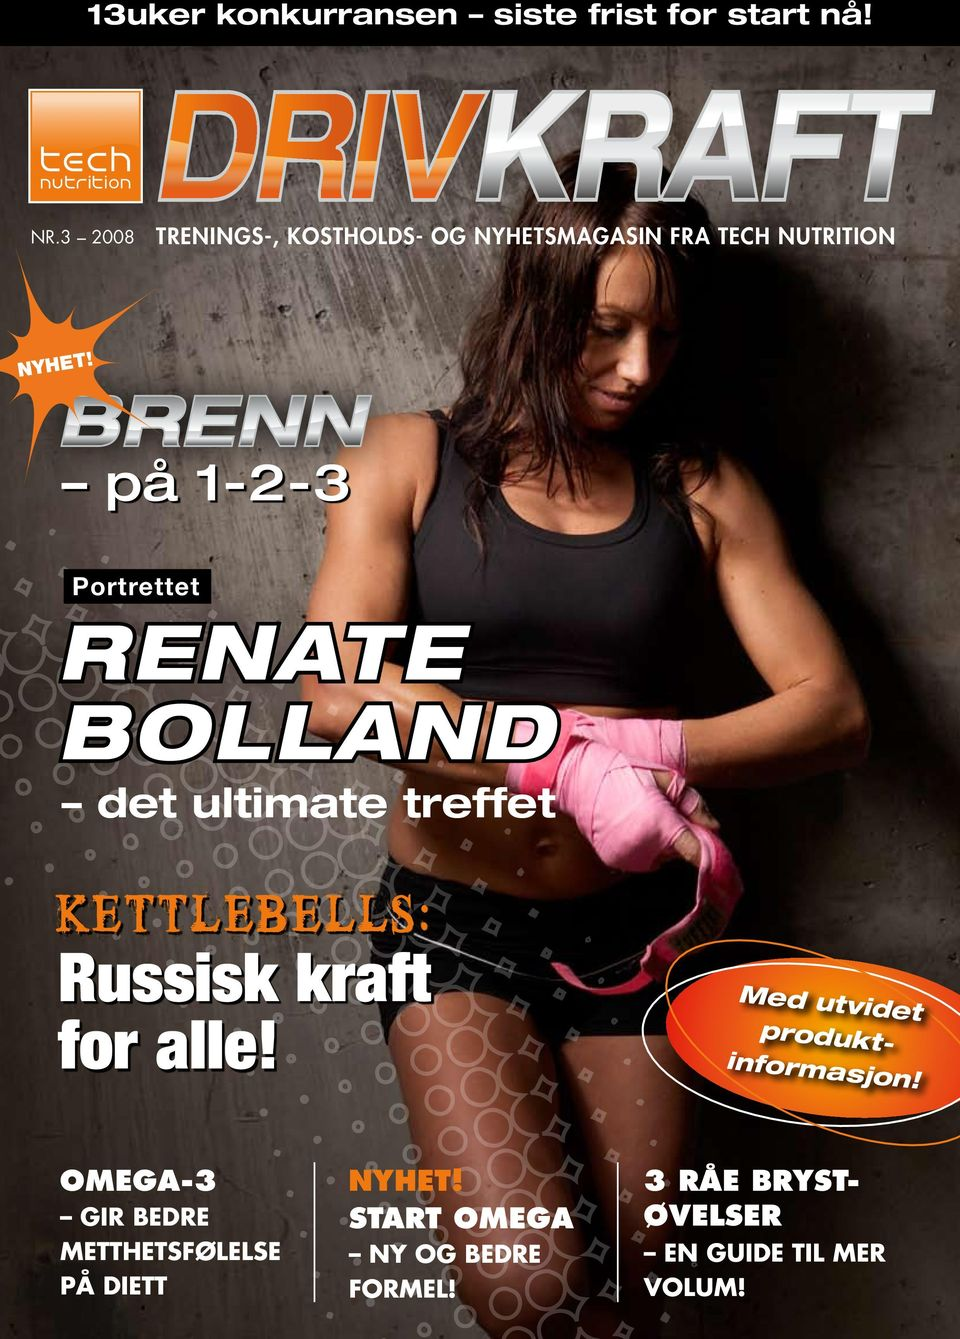 på 1-2-3 Portrettet RENATE BOLLAND det ultimate treffet Kettlebells: Russisk kraft for alle!